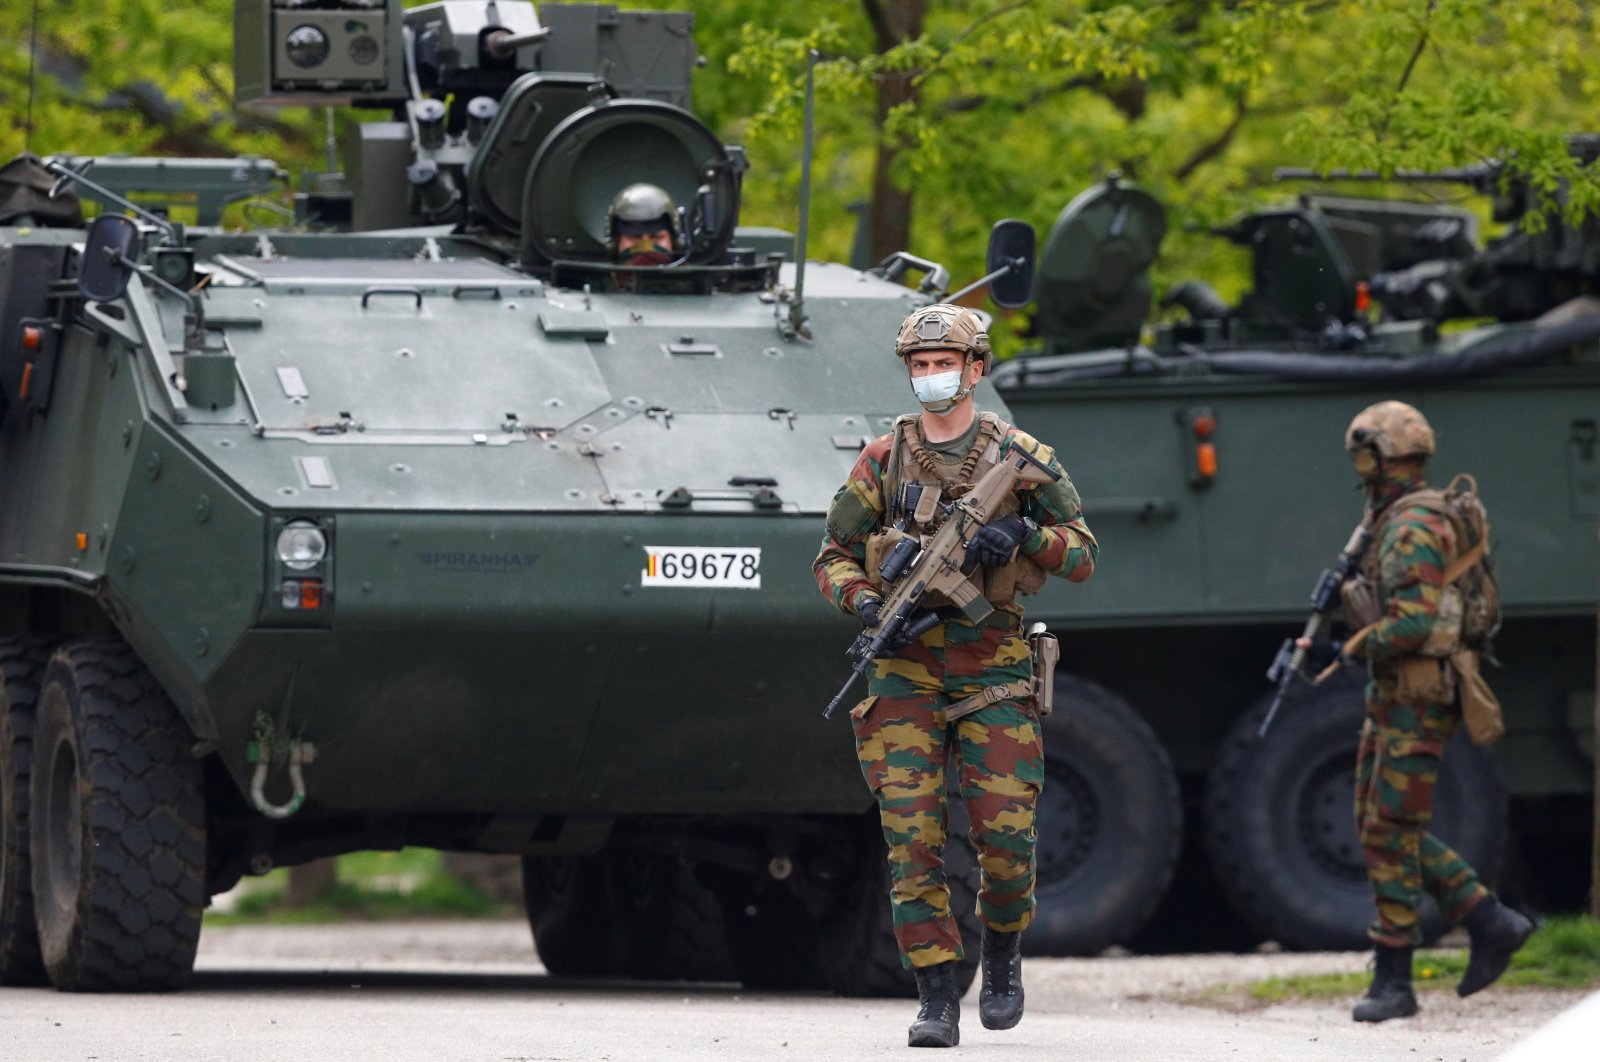 Members of the Belgian army are seen near the entrance of National Park Hoge Kempen while scouring the region for Jurgen Conings, a soldier who disappeared after threatening a virologist supportive of COVID-19 vaccines and coronavirus restrictions, in Maasmechelen, Belgium, May 20, 2021. (Reuters Photo)